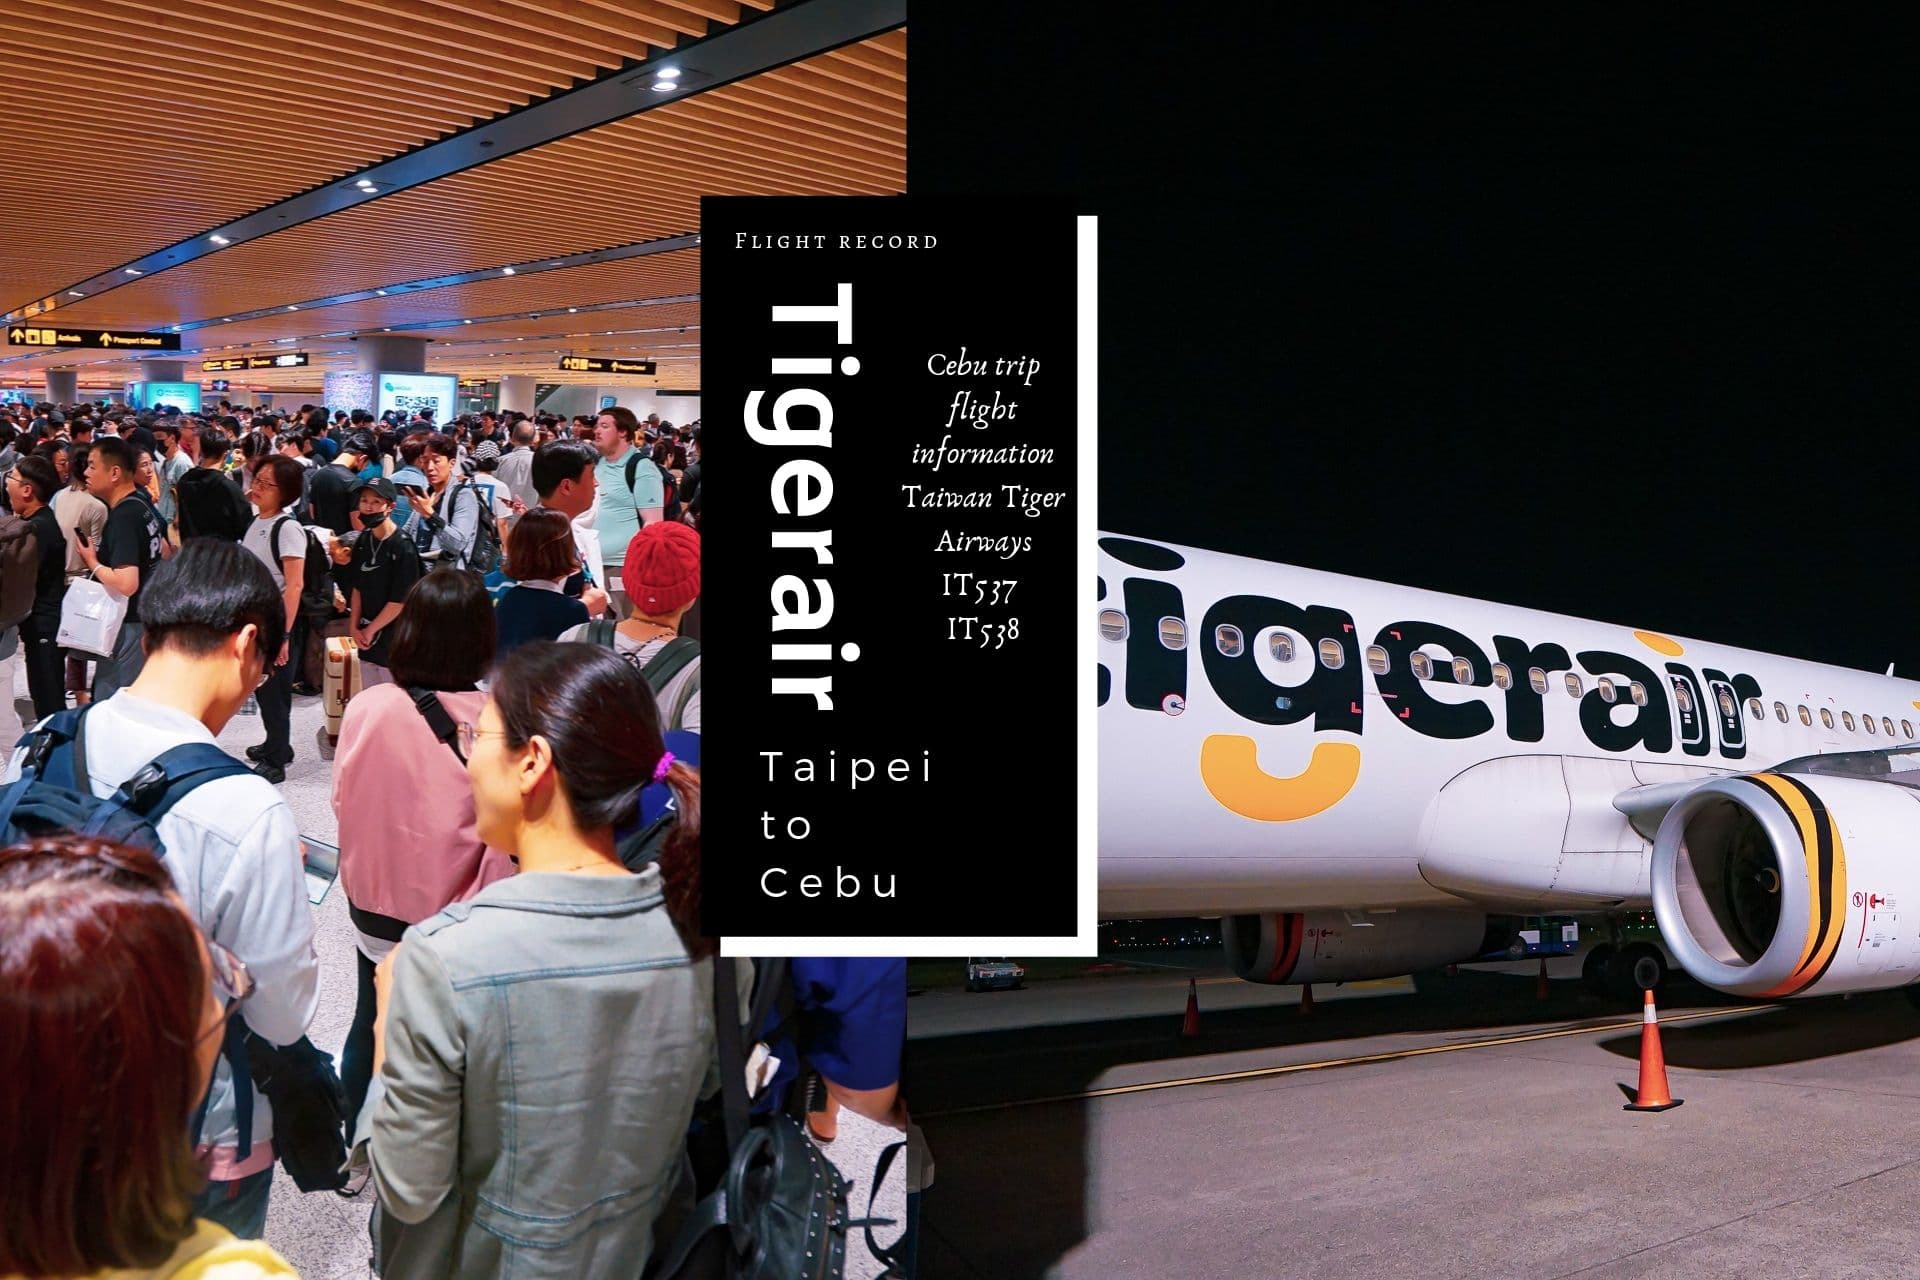 台灣虎航Tigerair Taiwan -IT537、IT538